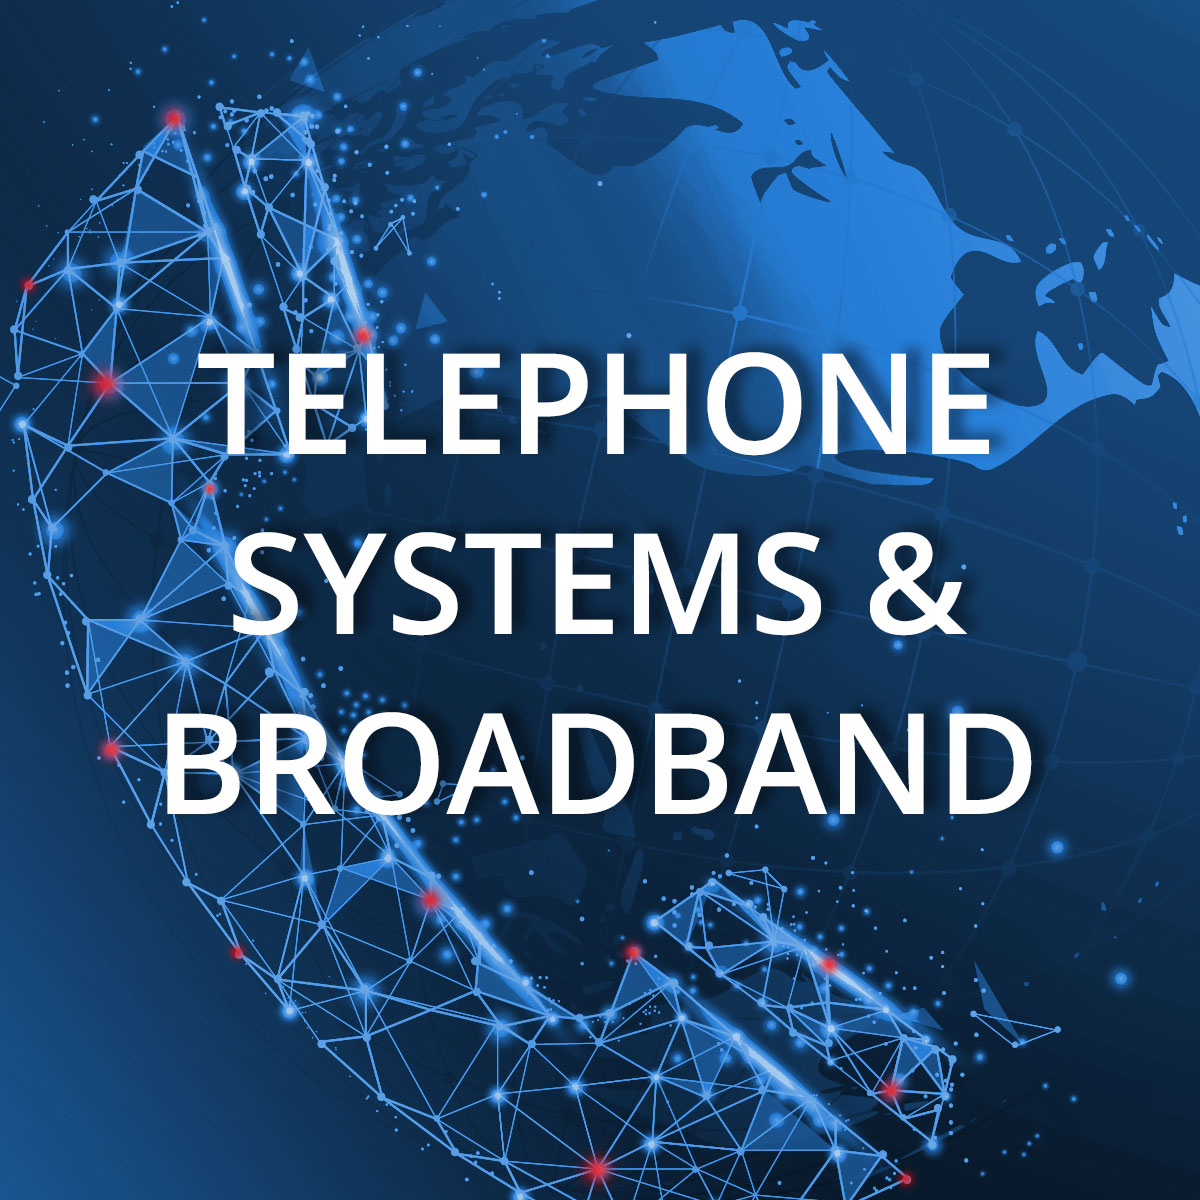 Interpro Technology IT Support - Internet VoIP Telephone Hosted System Business Broadband Fibre - Portsmouth, Southampton, Fareham, Hampshire